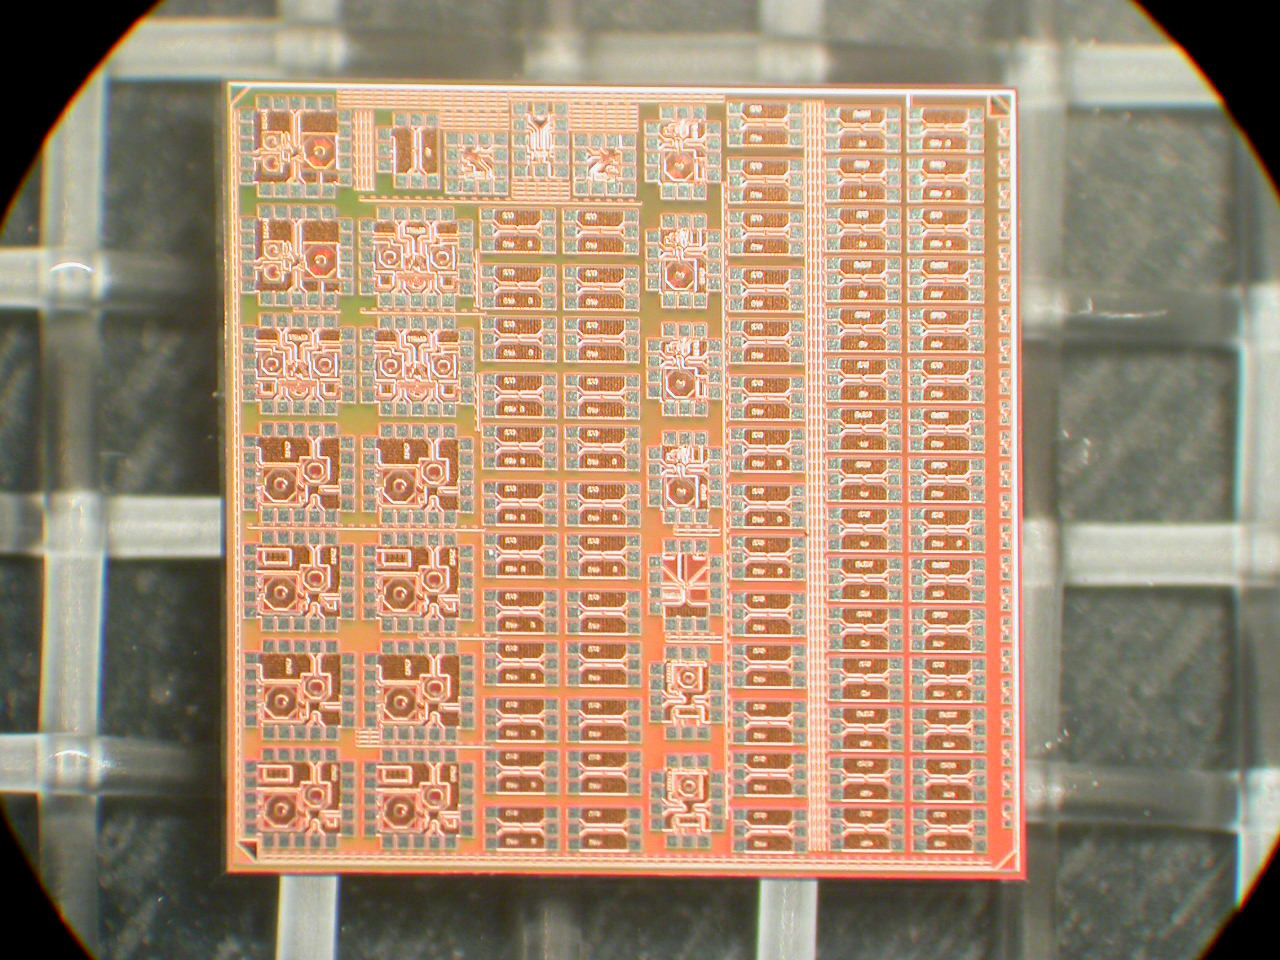 Umass Amherst Radio Frequency Nanoelectronics Group Amplifier